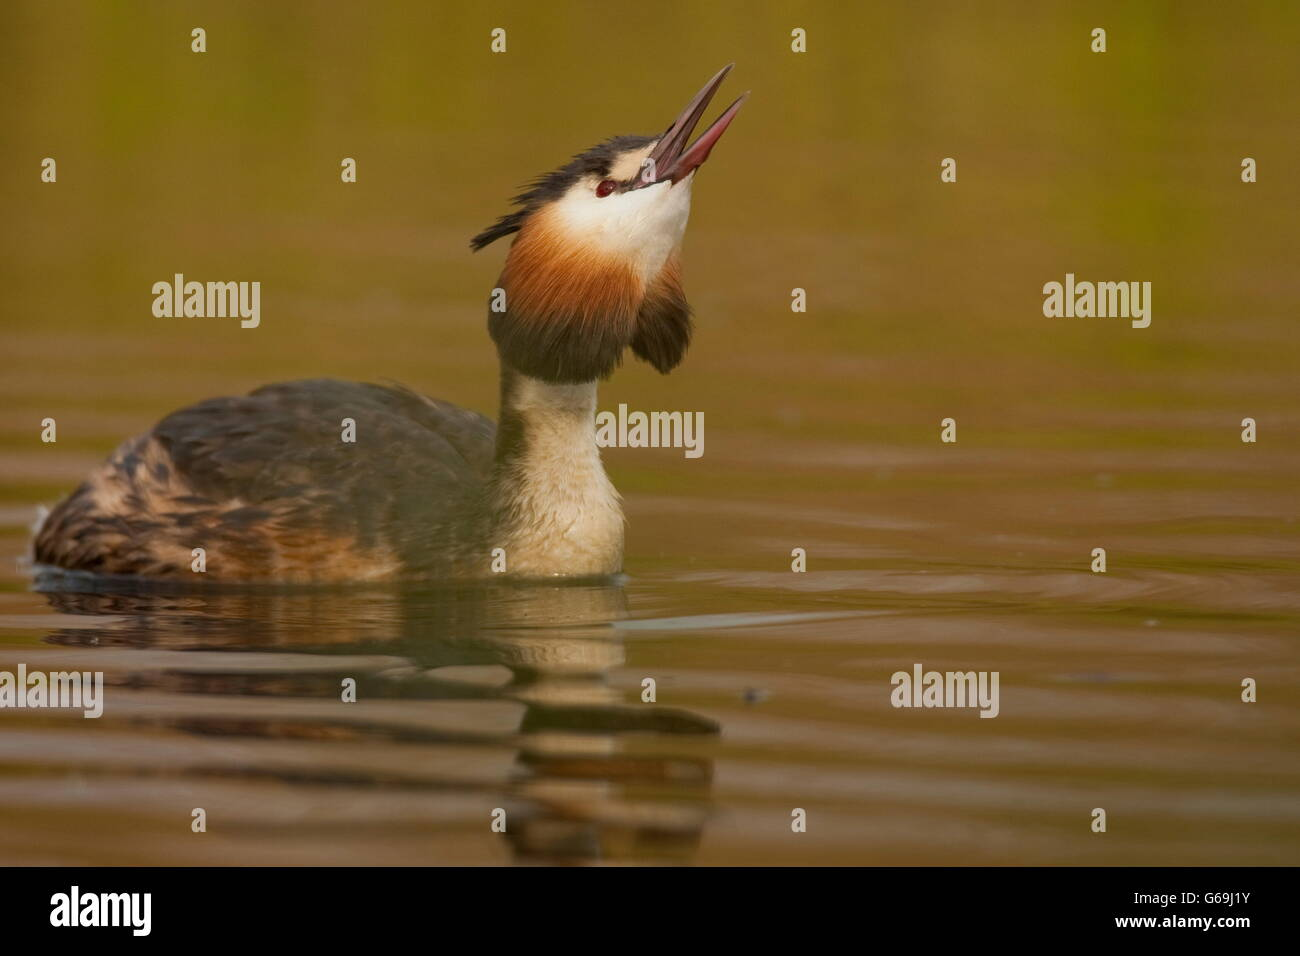 great crested grebe, Texel, Netherlands / (Podiceps cristatus) - Stock Image